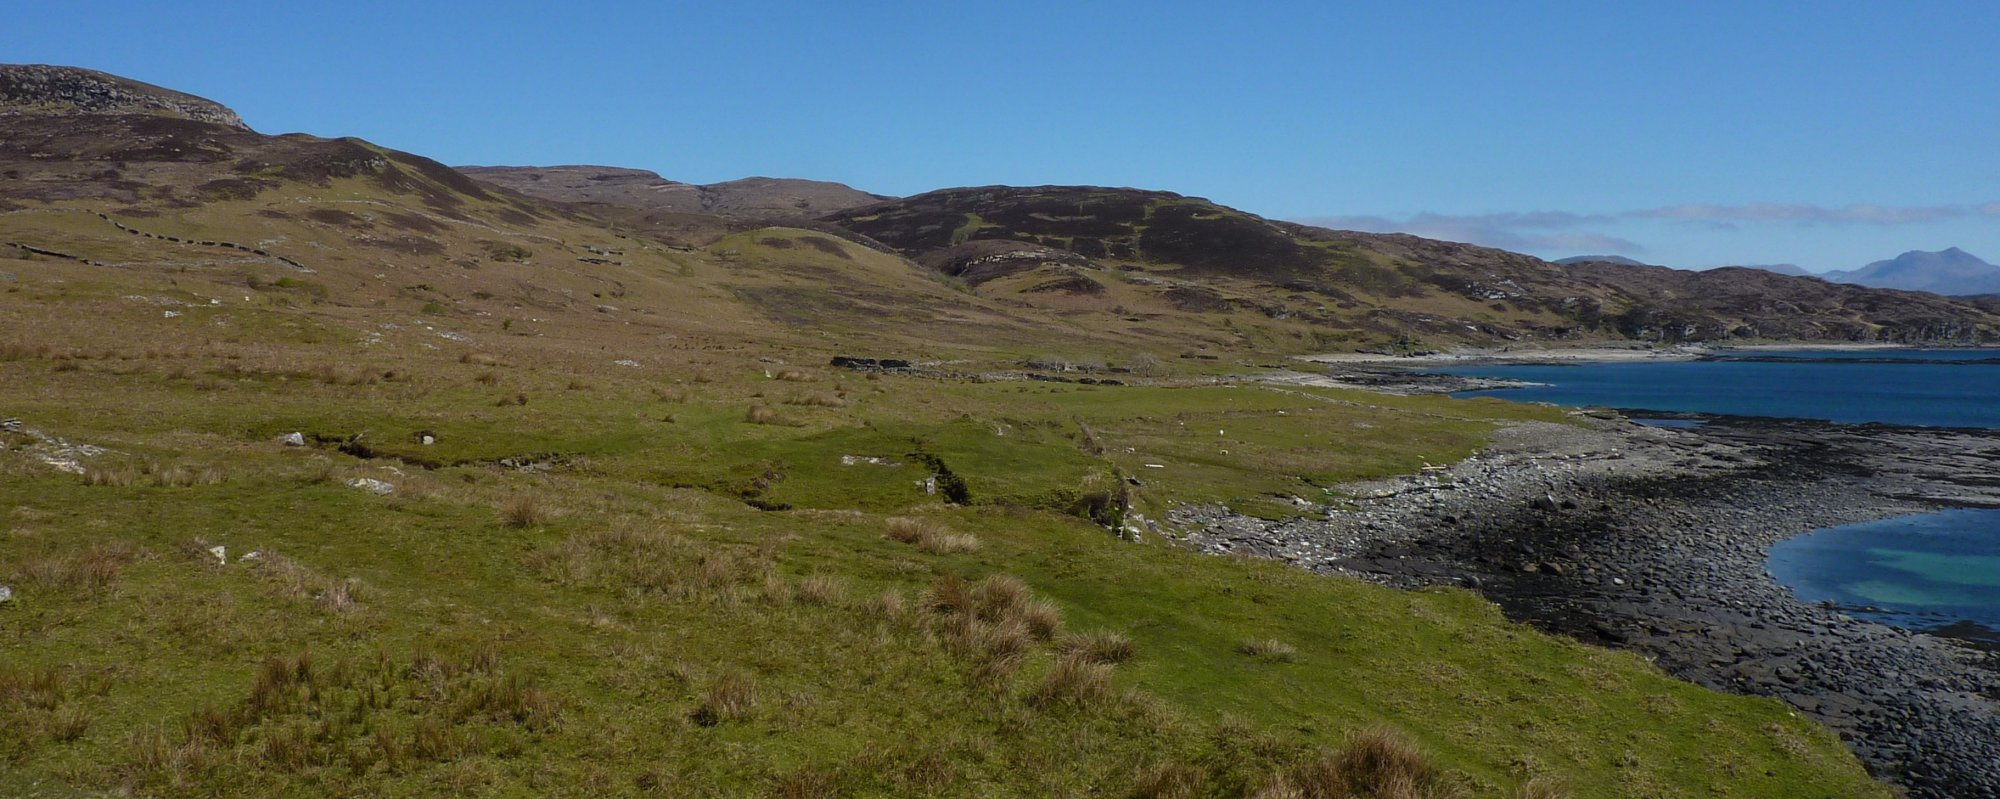 Arriving in Boreraig, lovely green and fertile pastures, allocated to sheep at the expense of several crofting families